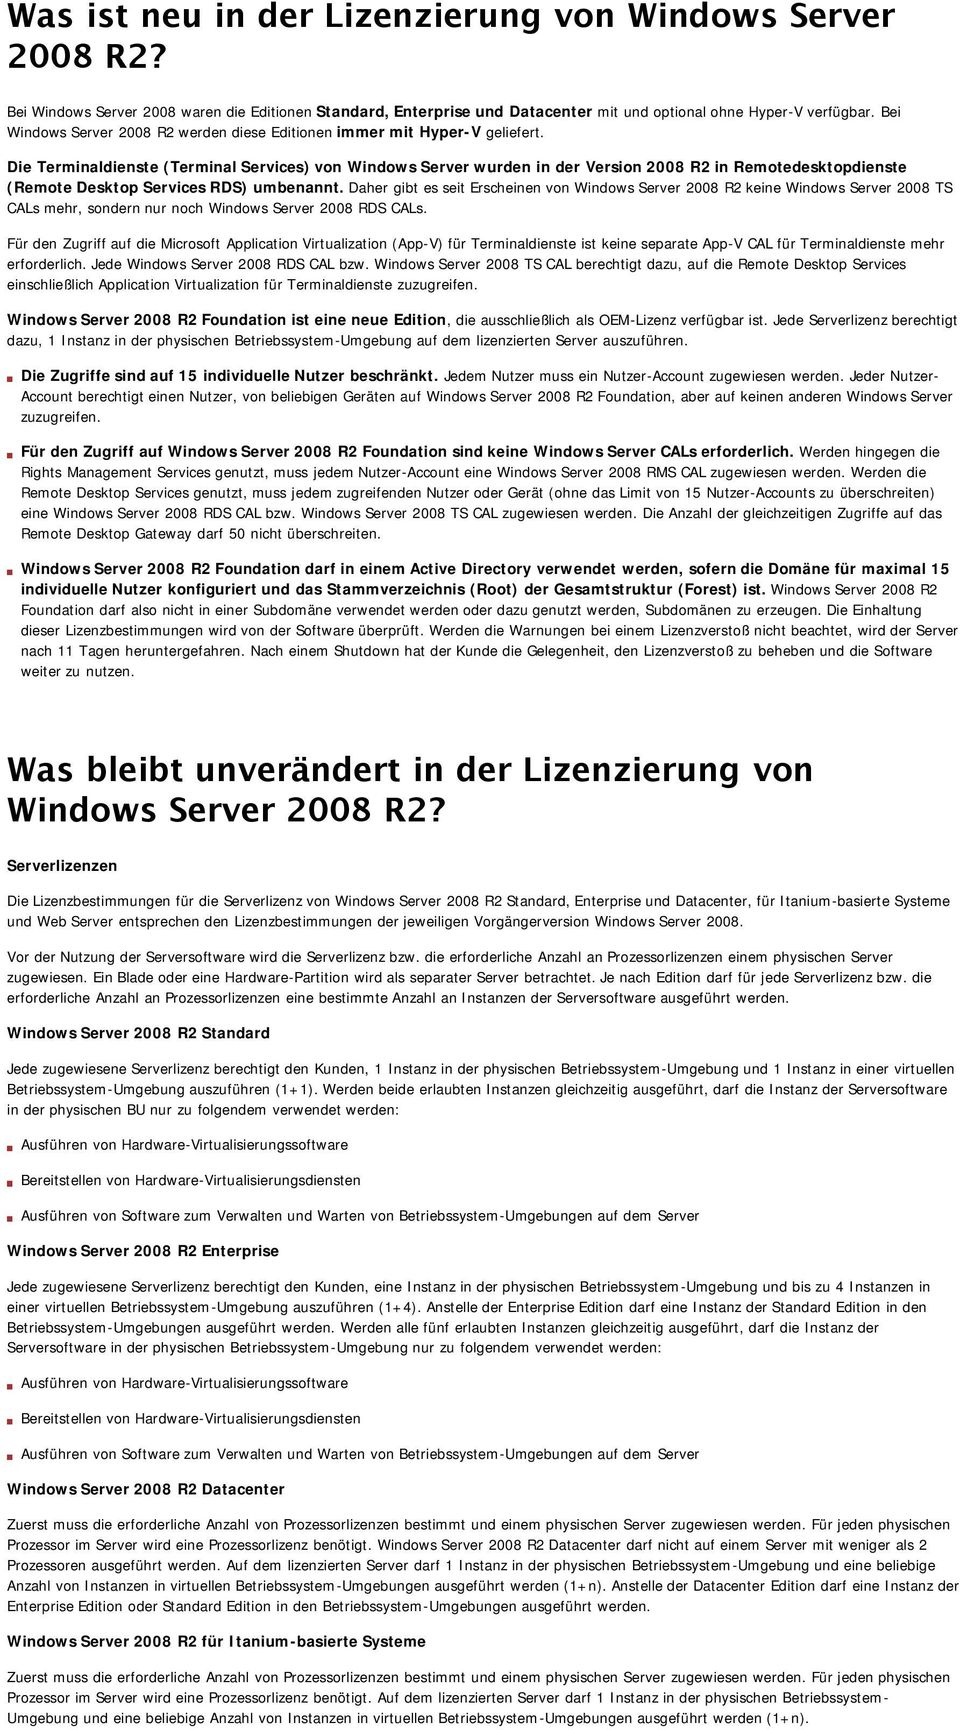 Die Terminaldienste (Terminal Services) von Windows Server wurden in der Version 2008 R2 in Remotedesktopdienste (Remote Desktop Services RDS) umbenannt.